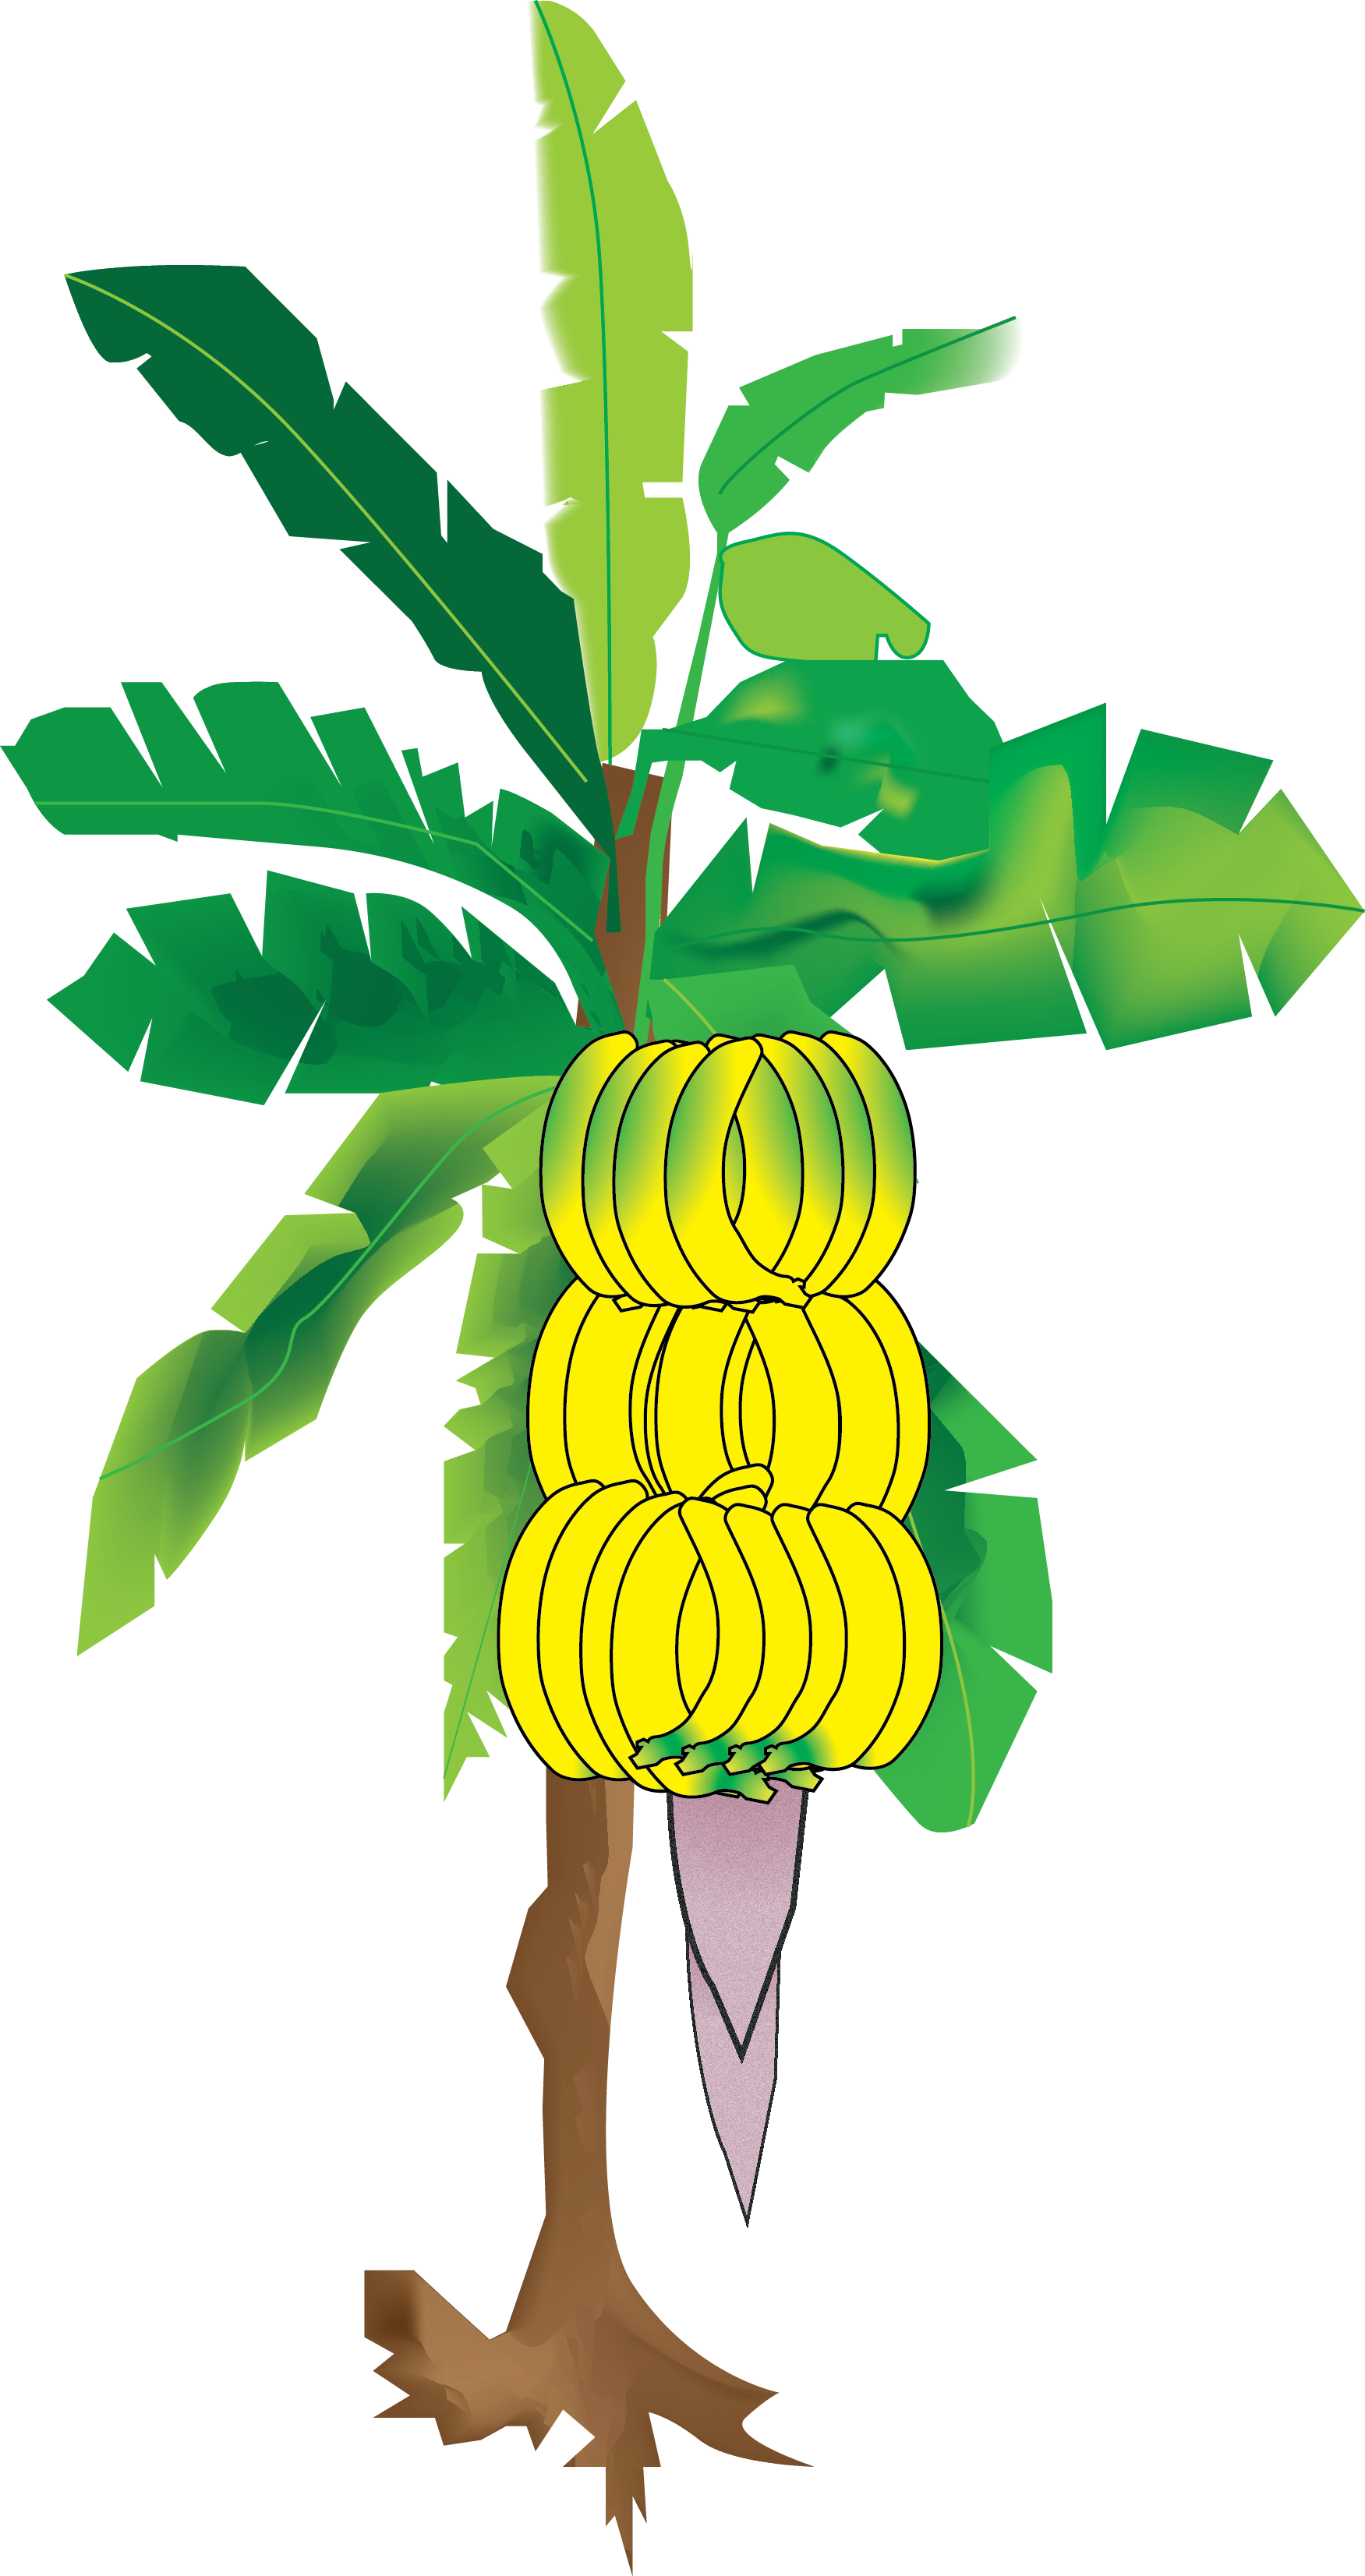 Transparent tropical climate clipart - My Illustration Of The Banana Tree From Sun's Eye An - Banana Tree Digital Painting